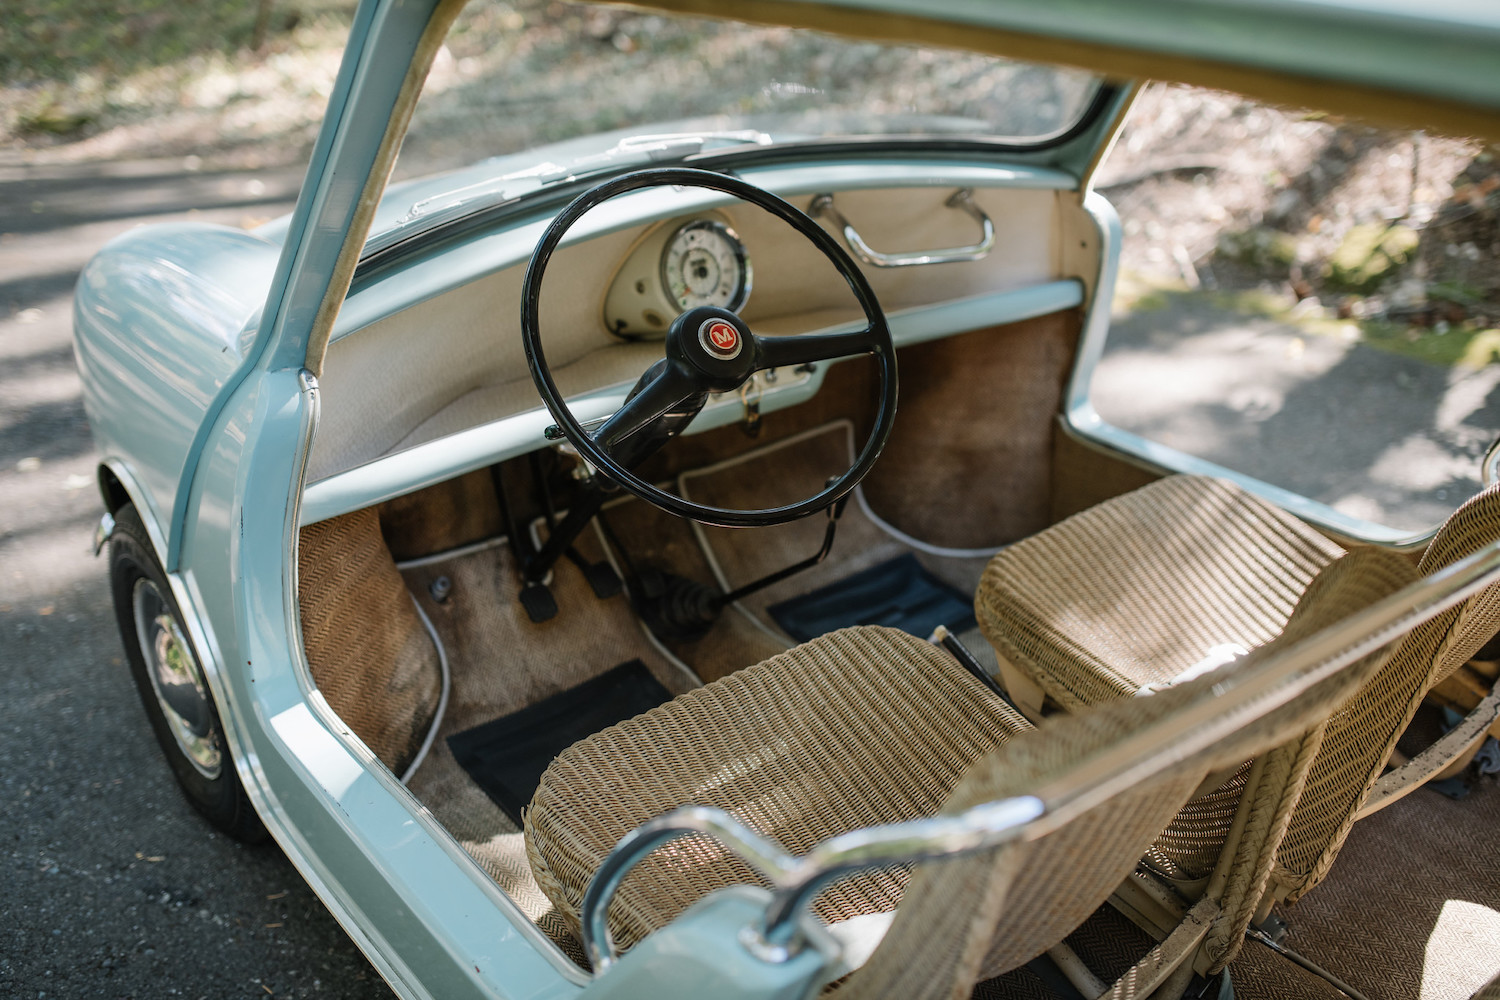 1962 Austin Mini Beach Car interior dash